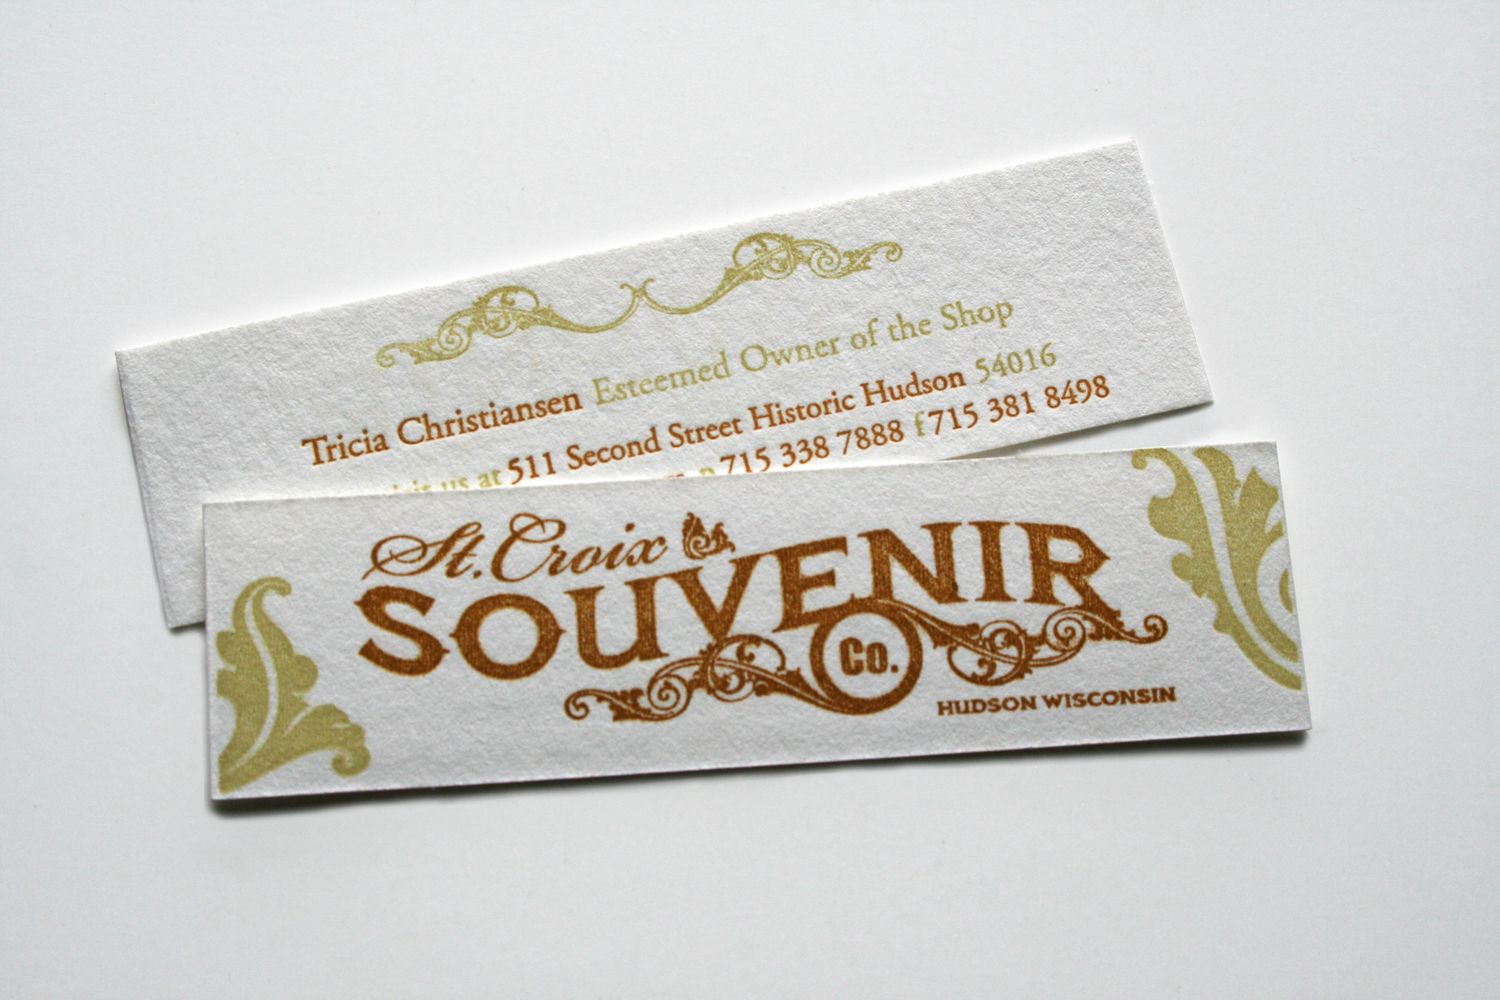 Business cards for St. Croix Souvenir Co. in Hudson, WI